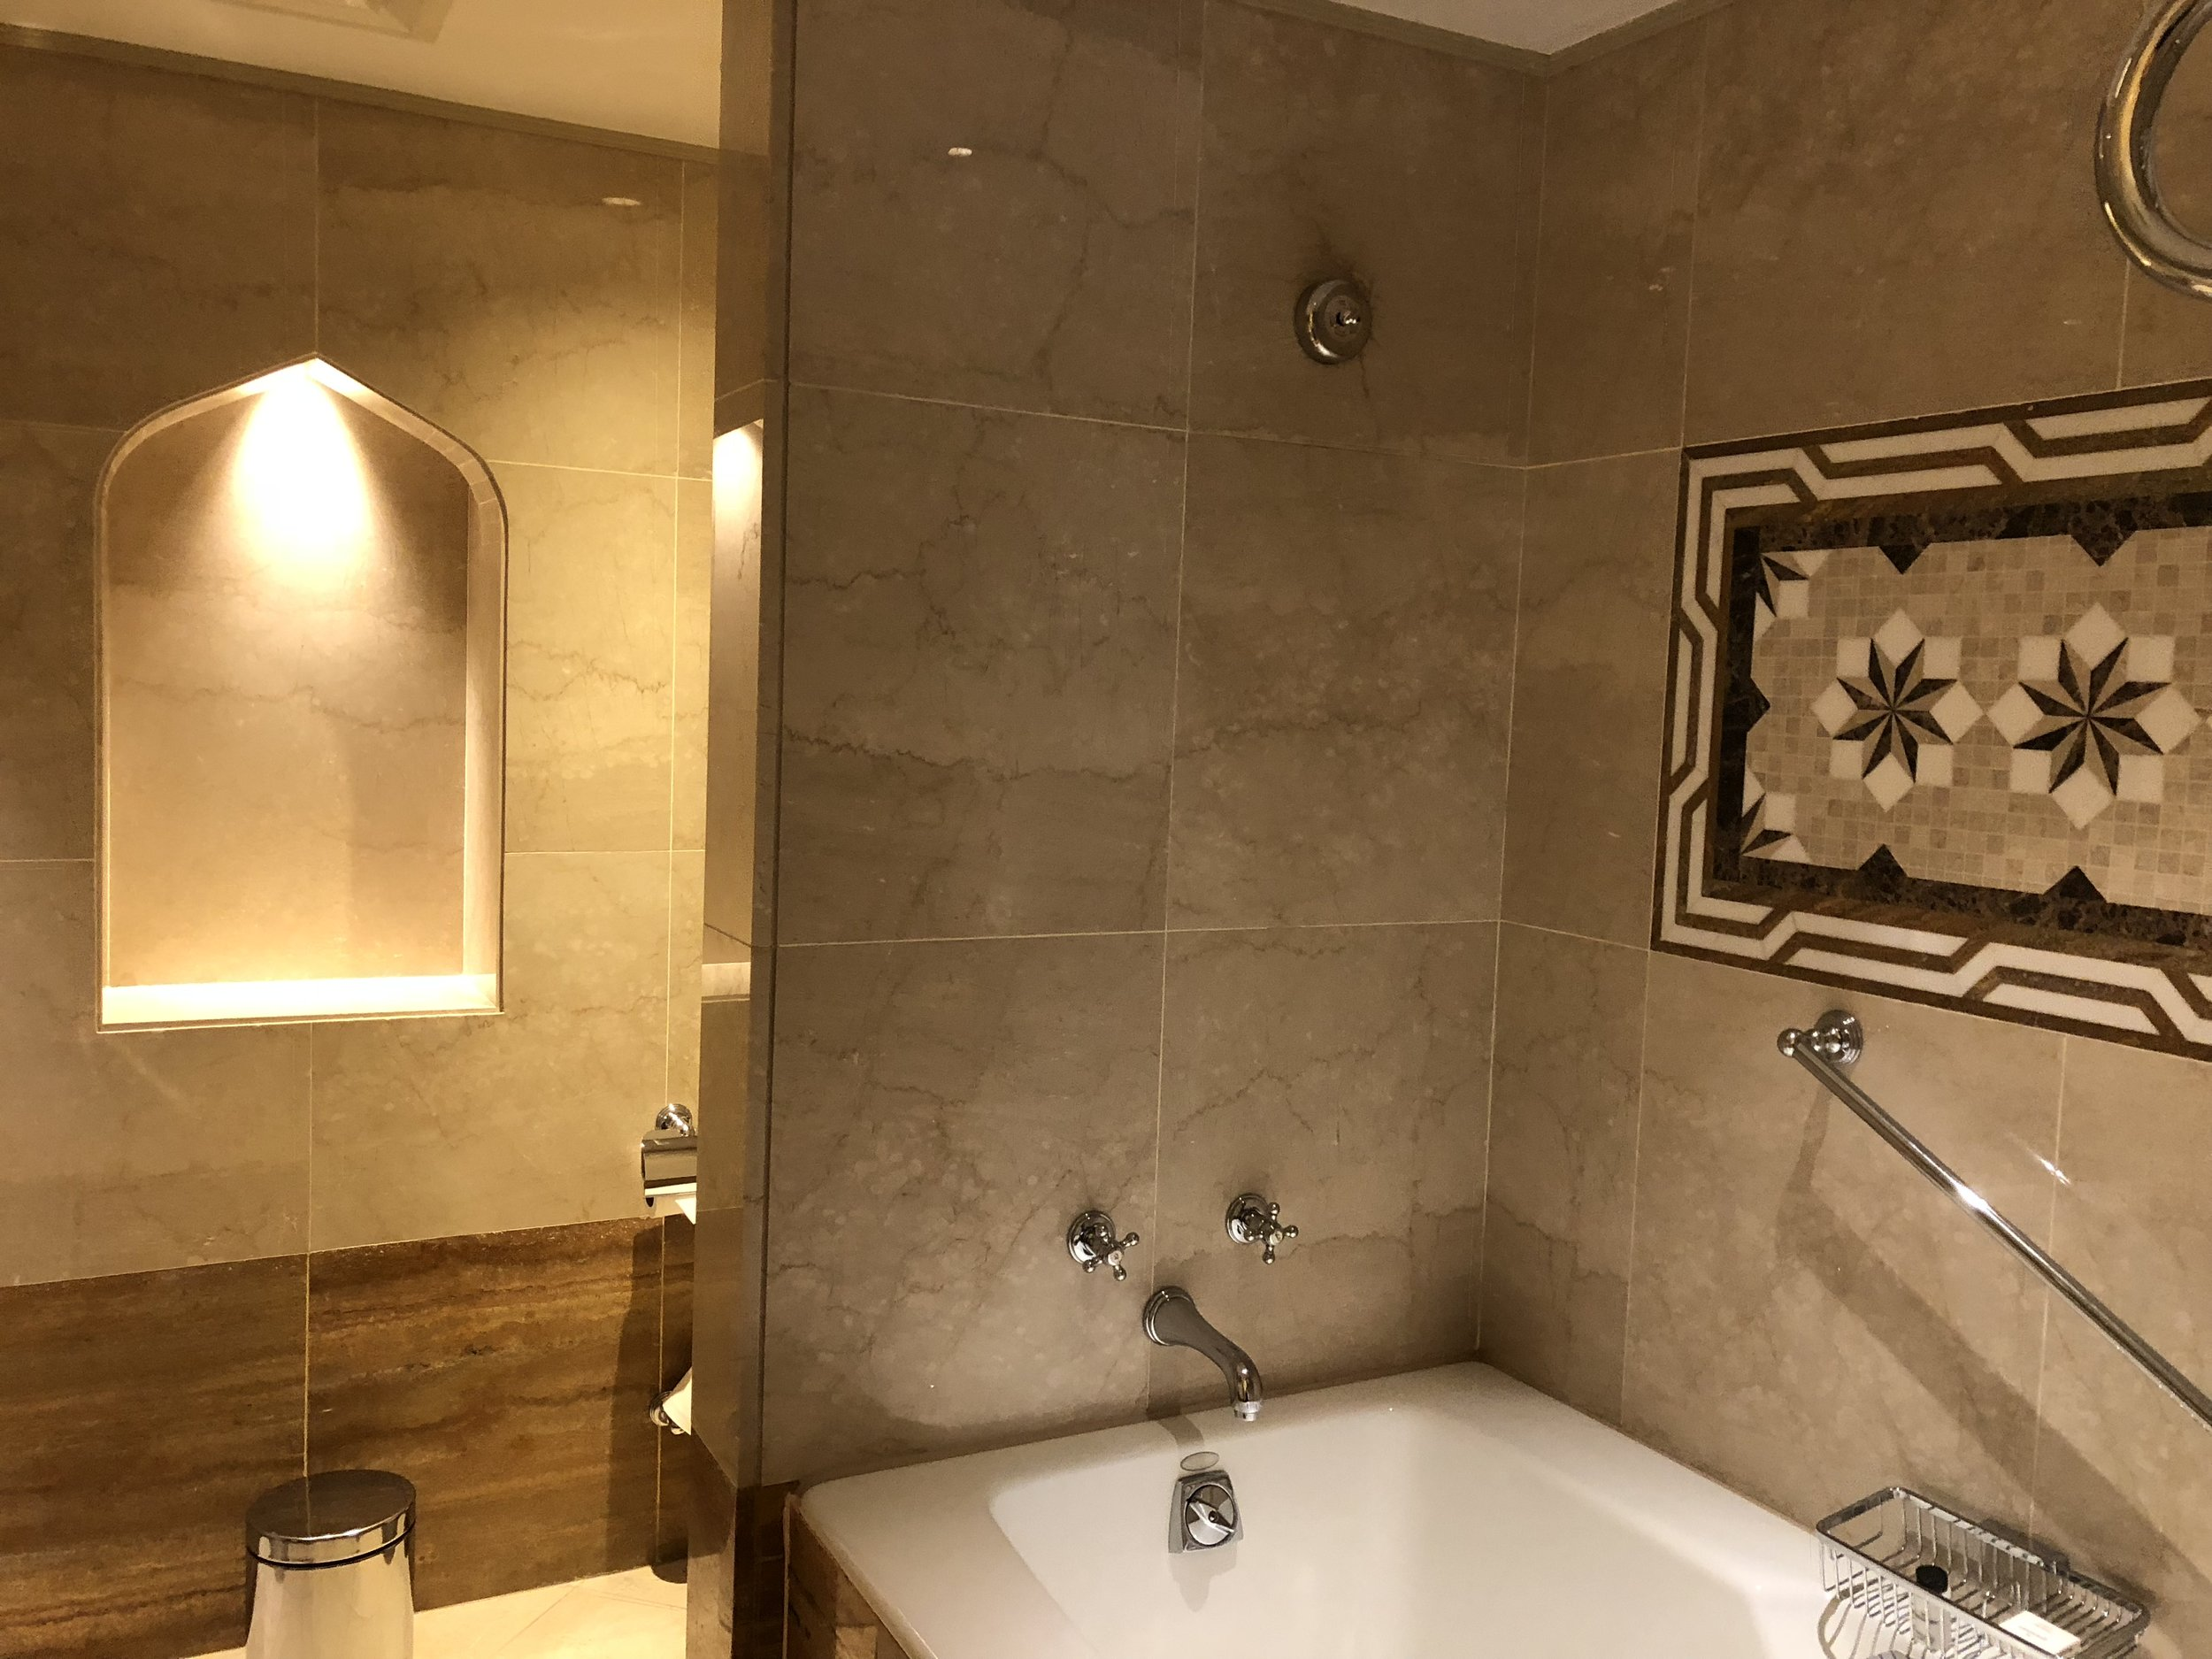 Islamic Patterns and Design Bathroom Sheraton © Flyga Twiga LLC